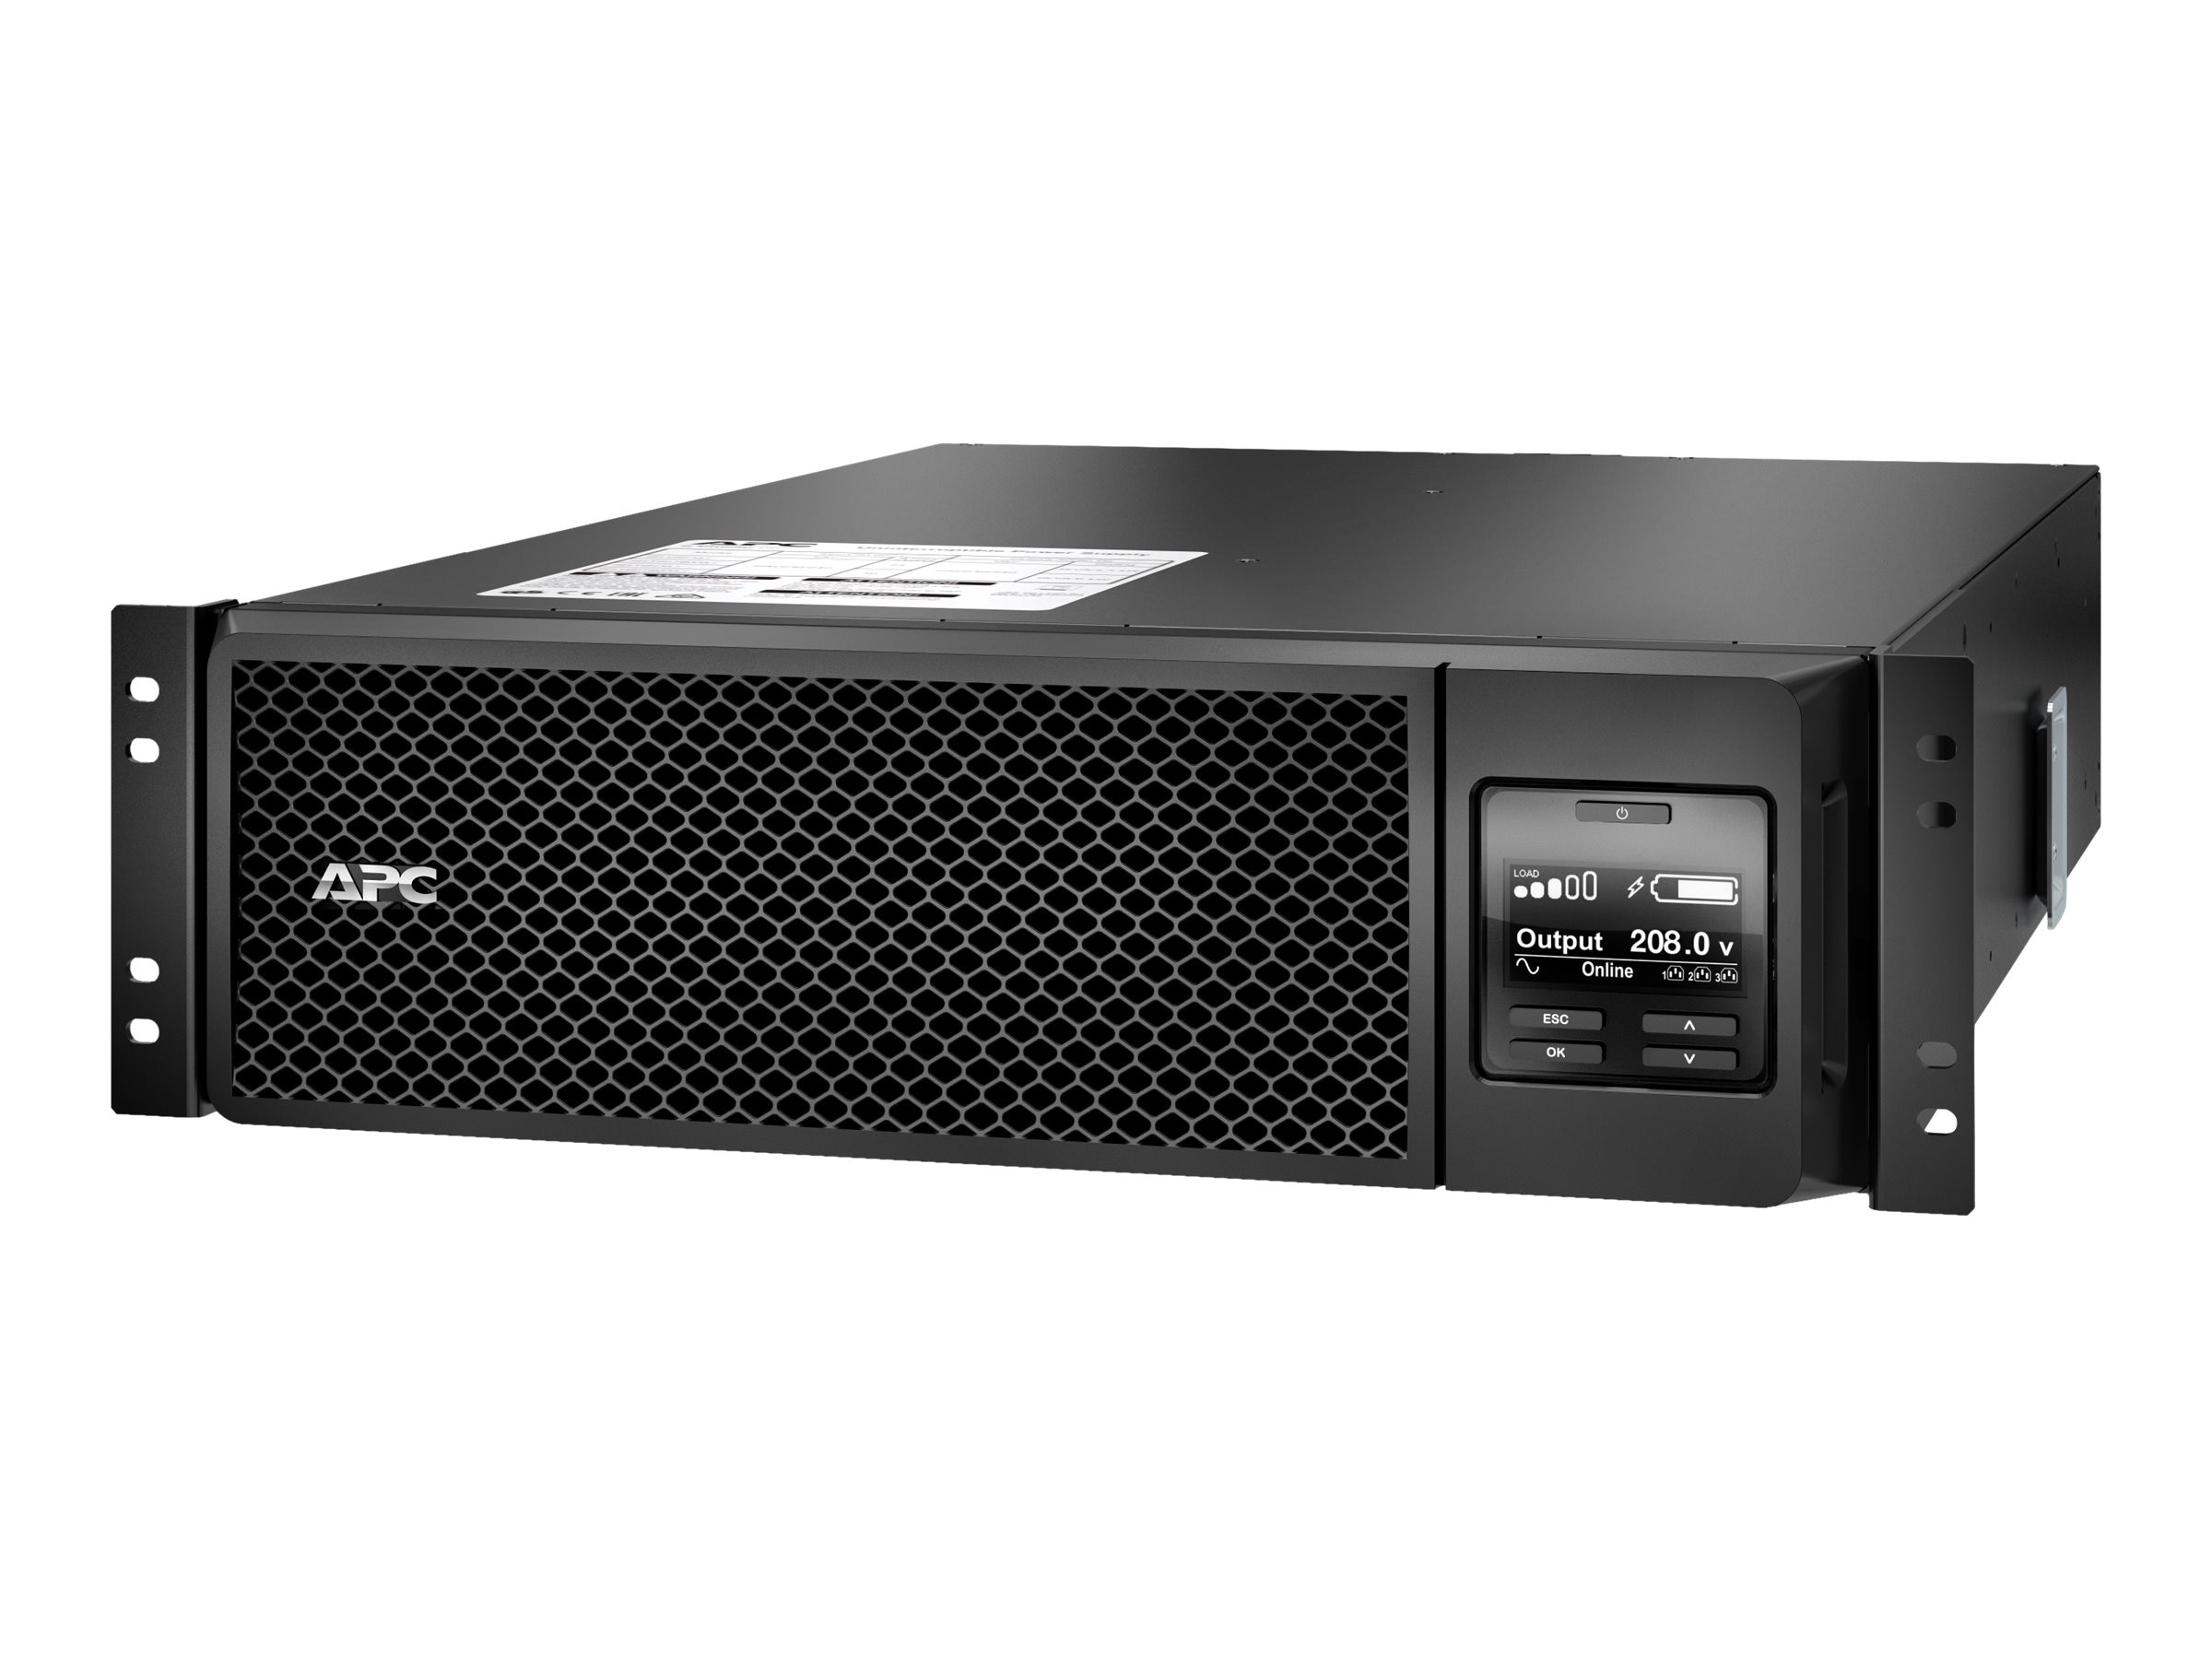 APC Smart-UPS SRT 5000VA 4250W 208V RM Online Extended Runtime Hardwired Internal Bypass